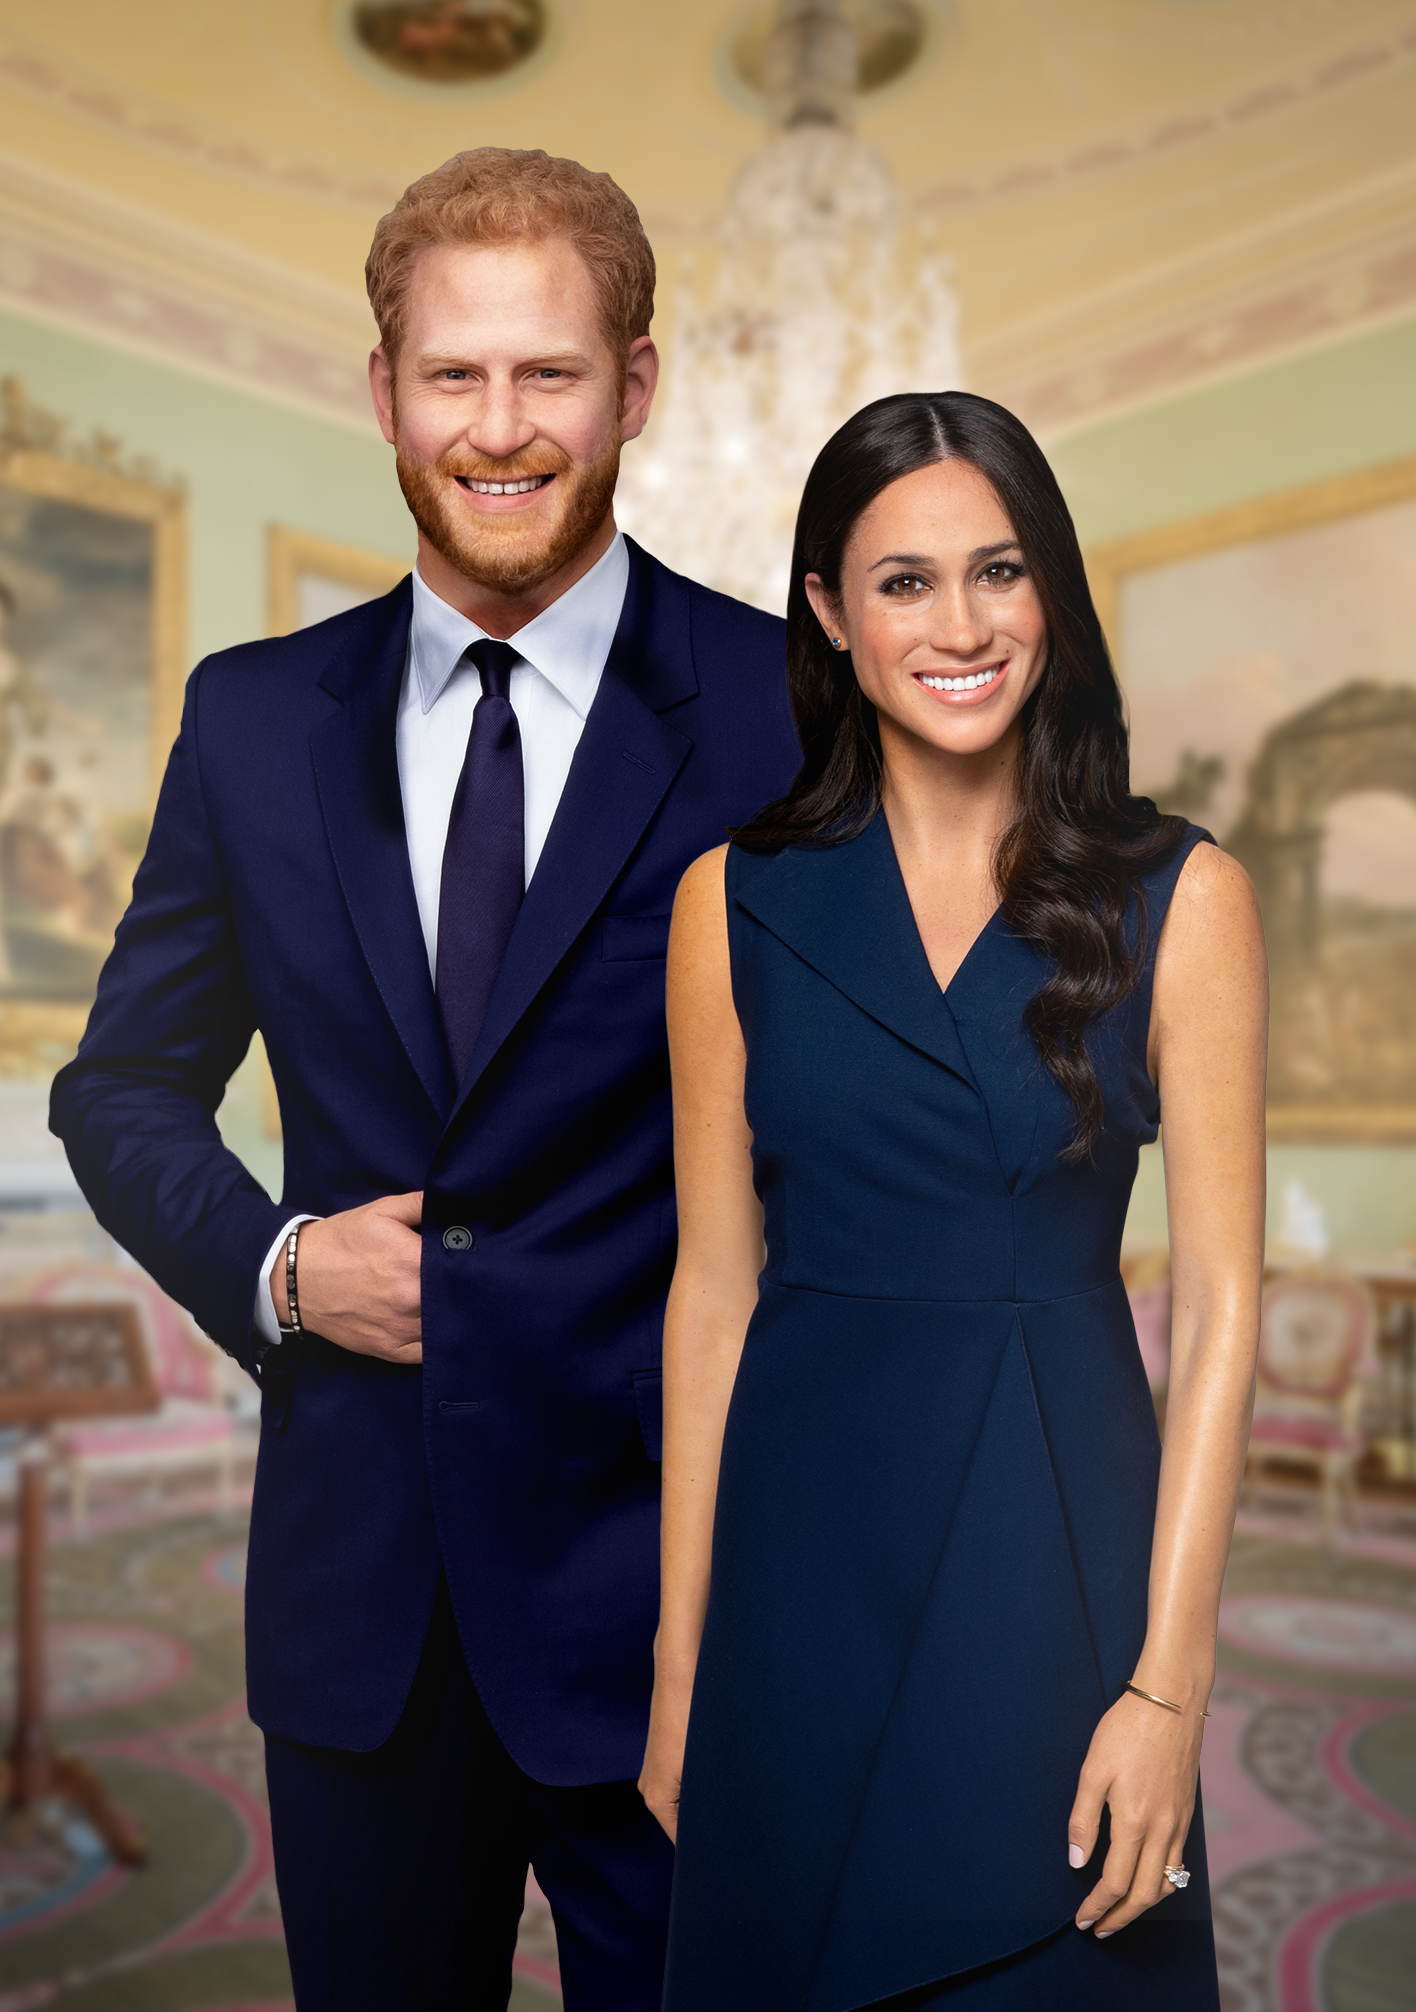 The Royal Academy at Madame Tussauds - The Duke and Duchess of Sussex are landing at Madame Tussauds Sydney! In their honour, the Madame Tussauds Sydney 'Instant Royal Academy' will be on hand to coach guests on etiquette, teaching all how to correctly address a Royal, sit gracefully, curtsy like a lady and perfect the Royal wave. From 2-4pm on the 7th and 14th of July, nationally acclaimed etiquette coach, Zarife Hardy, will also be hosting exclusive lessons in Royal etiquette at the new experience for all budding Princes and Princesses!To sweeten the experience, the first 20 walk-up customers each day during the NSW school holidays (July 6th-21st) will receive a memorabilia biscuit, personalised with their Royal portrait or selfie. The bespoke biscuits are otherwise available to purchase in-attraction.What: The Royals at Madame Tussauds SydneyWhen: Brand new permanent experience from Monday 1st JulyHours: Open daily from 10am-6pm (last entry at 5pm).Cost: Included in price of admission. Adults from $35.00 Children from $24.60. Book online and save.Website: www.madametussauds.com.au